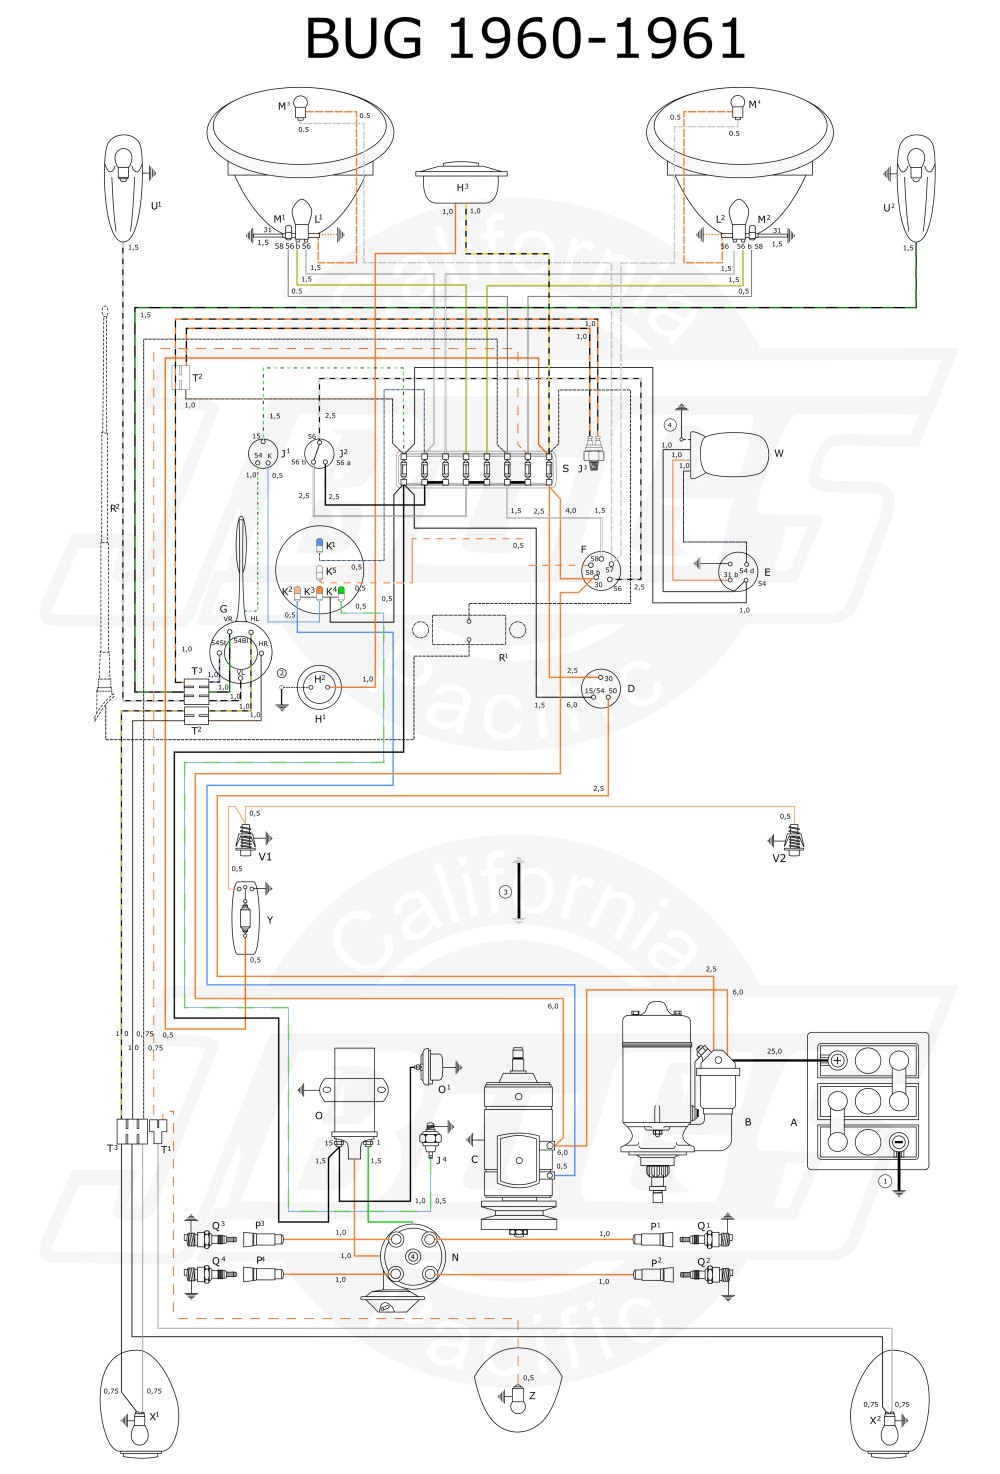 medium resolution of 1999 vw beetle diagram for pinterest schema diagram database vw air cooled engine diagram for pinterest